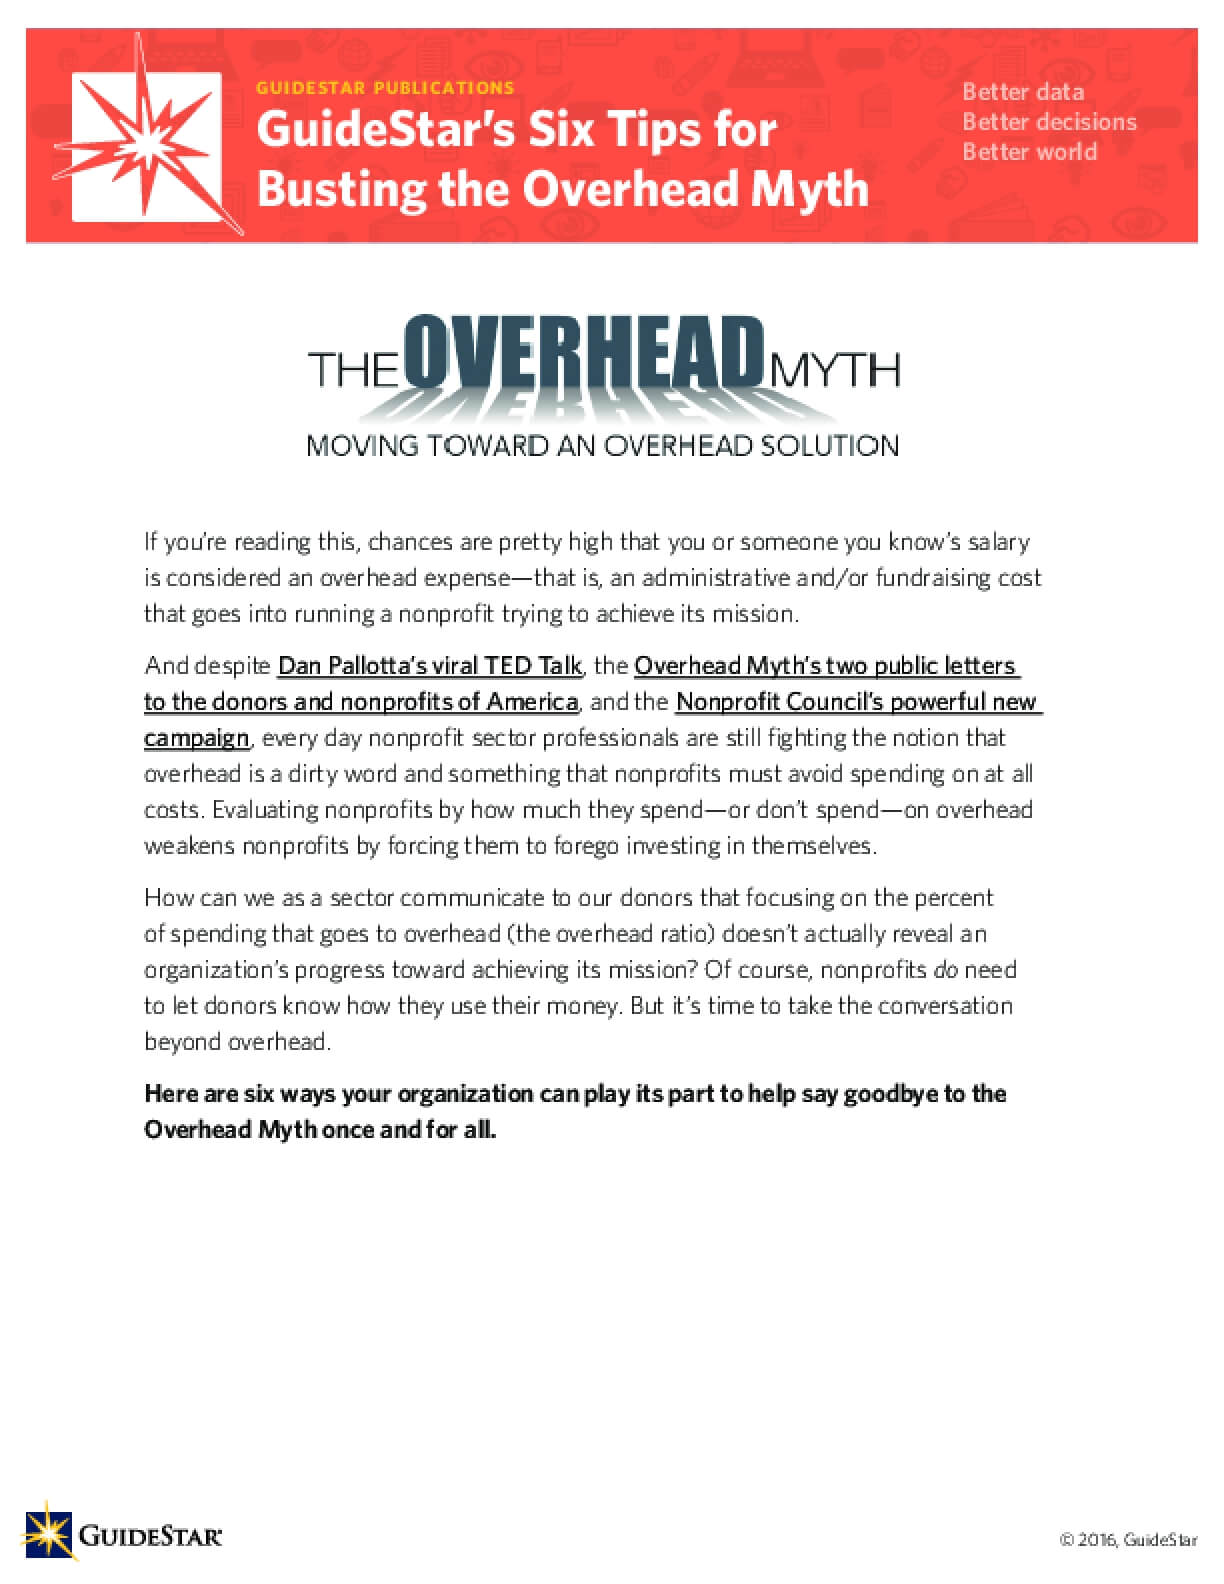 GuideStar's Six Tips for Busting the Overhead Myth